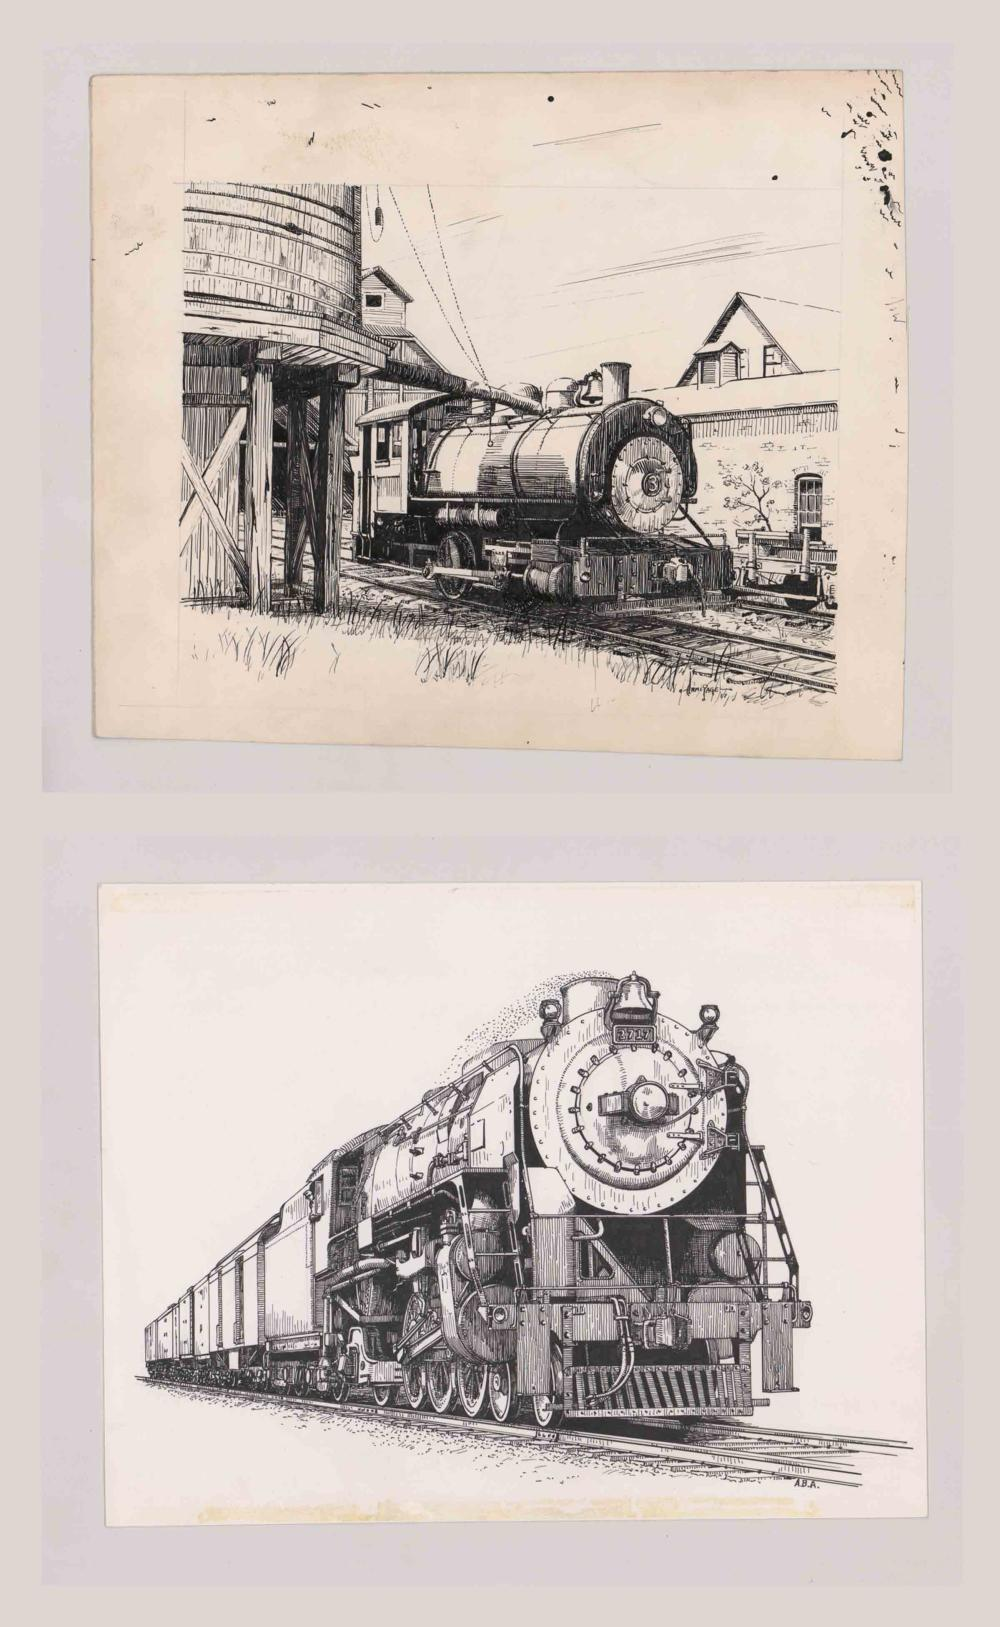 Lot 538: Al Armitage Original Pen and Ink Drawings [Trains]